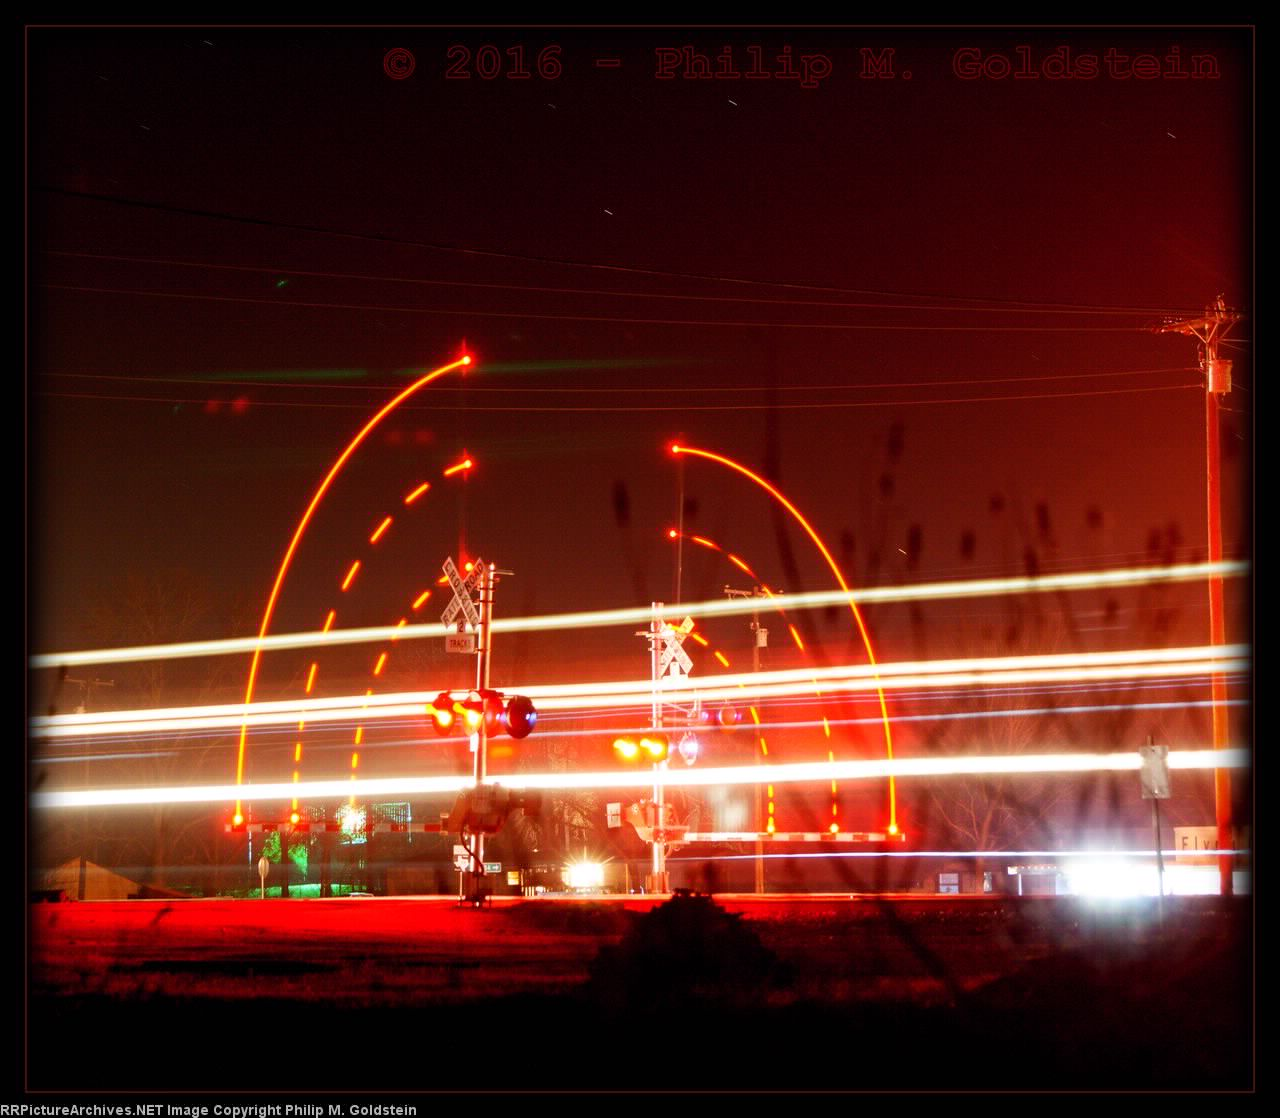 Crossing Gate & Headlight Trails